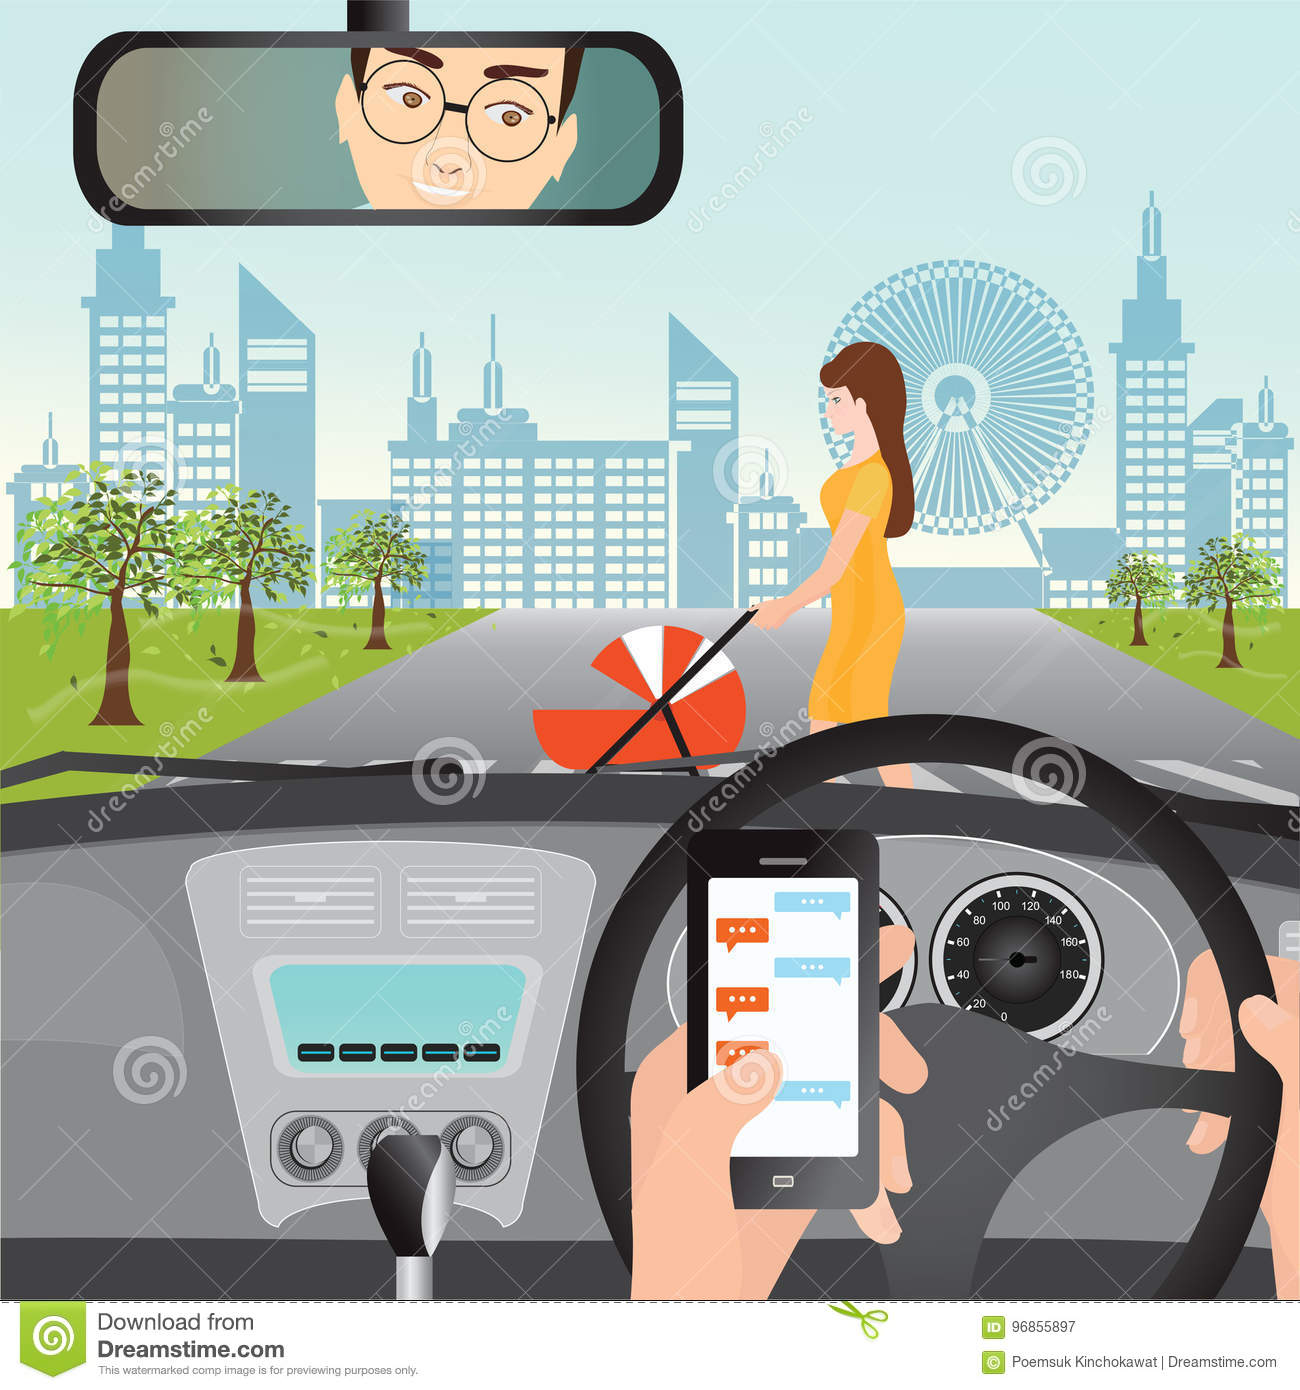 Man Using Smartphone While Driving The Car When Woman With